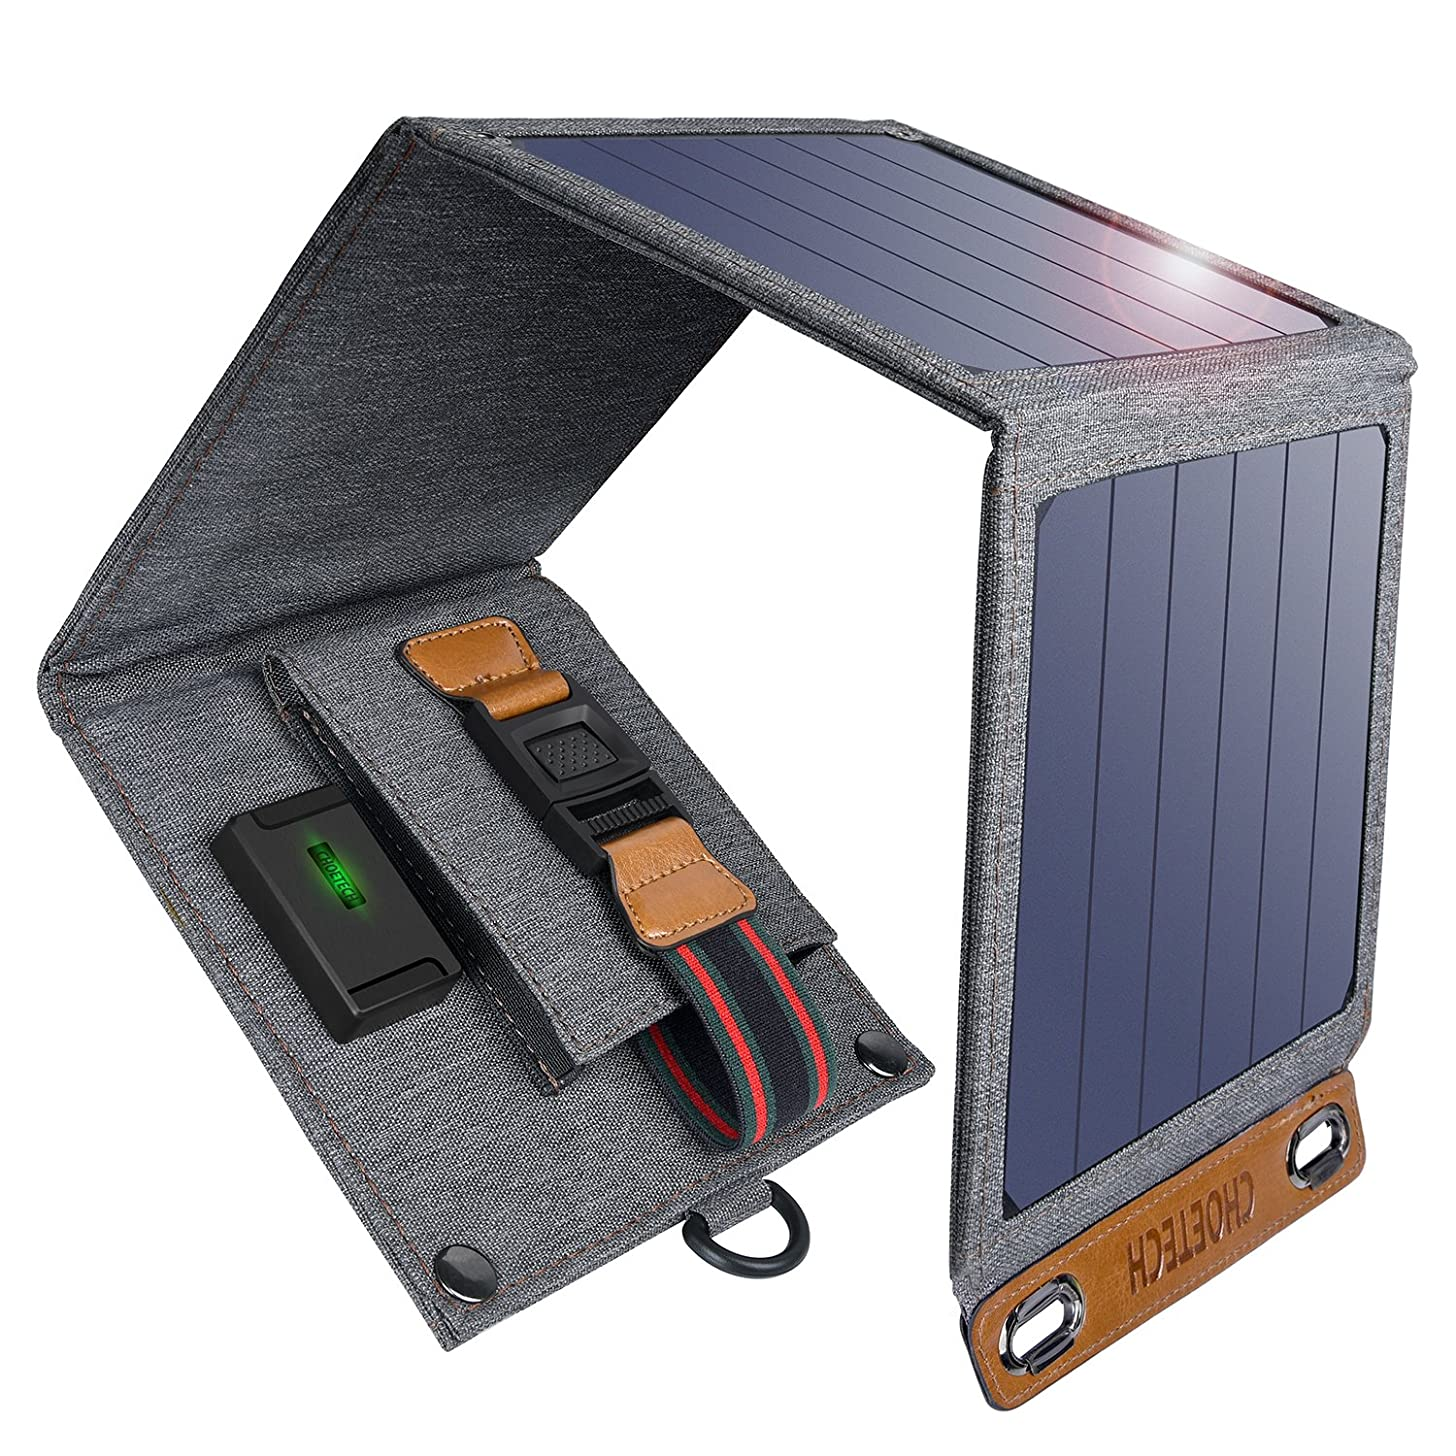 CHOETECH Solar Charger, 14W Solar Panel Phone Charger Waterproof Foldable Camping Charger Compatible iPhone Xs Max/XS/X/8, Galaxy S10/S10+, Other Smartphones, iPad, Camera, Bluetooth Speaker and More